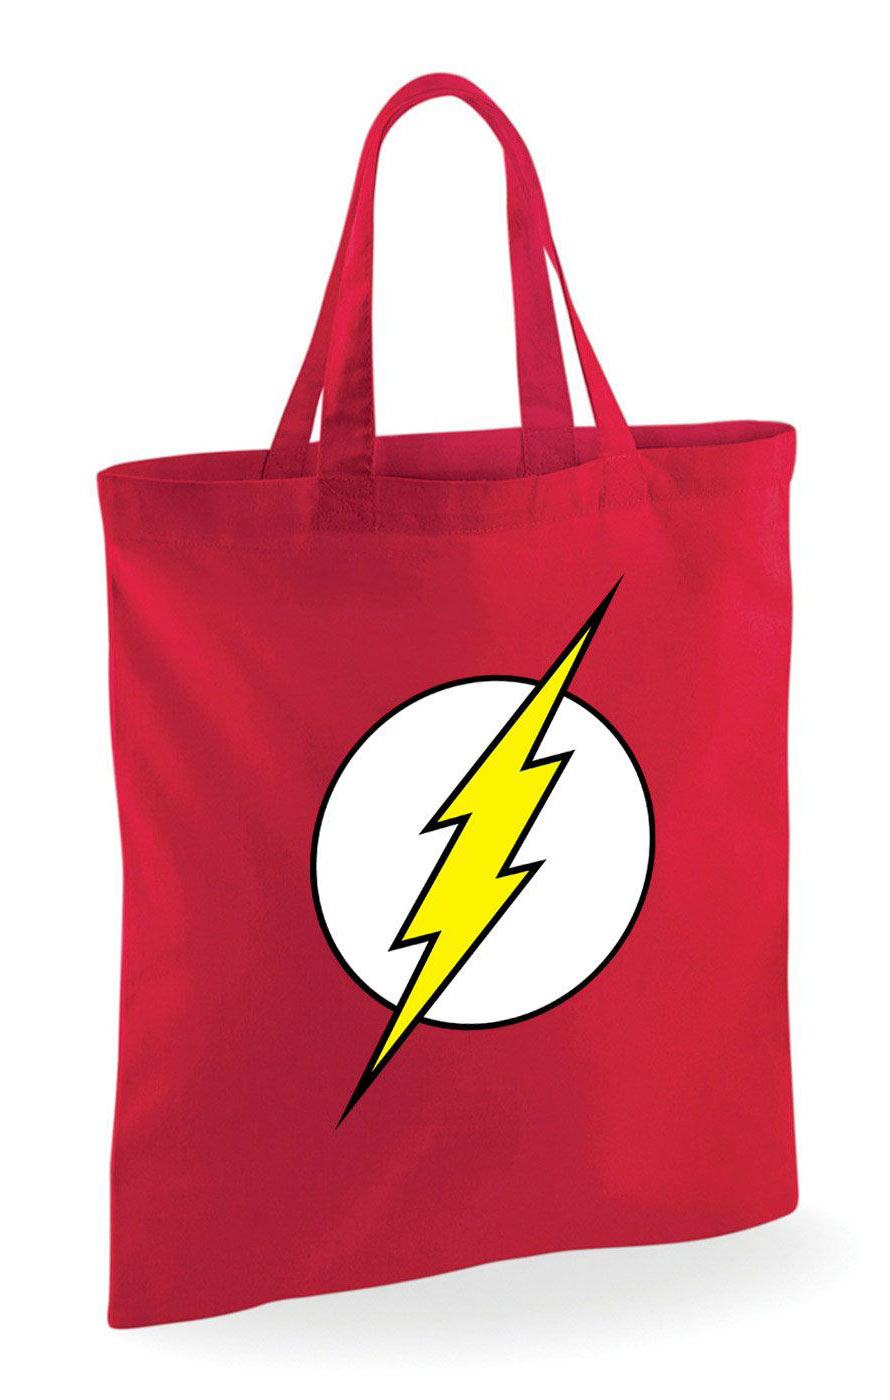 Bolsa logo The Flash 40 x 30 cm